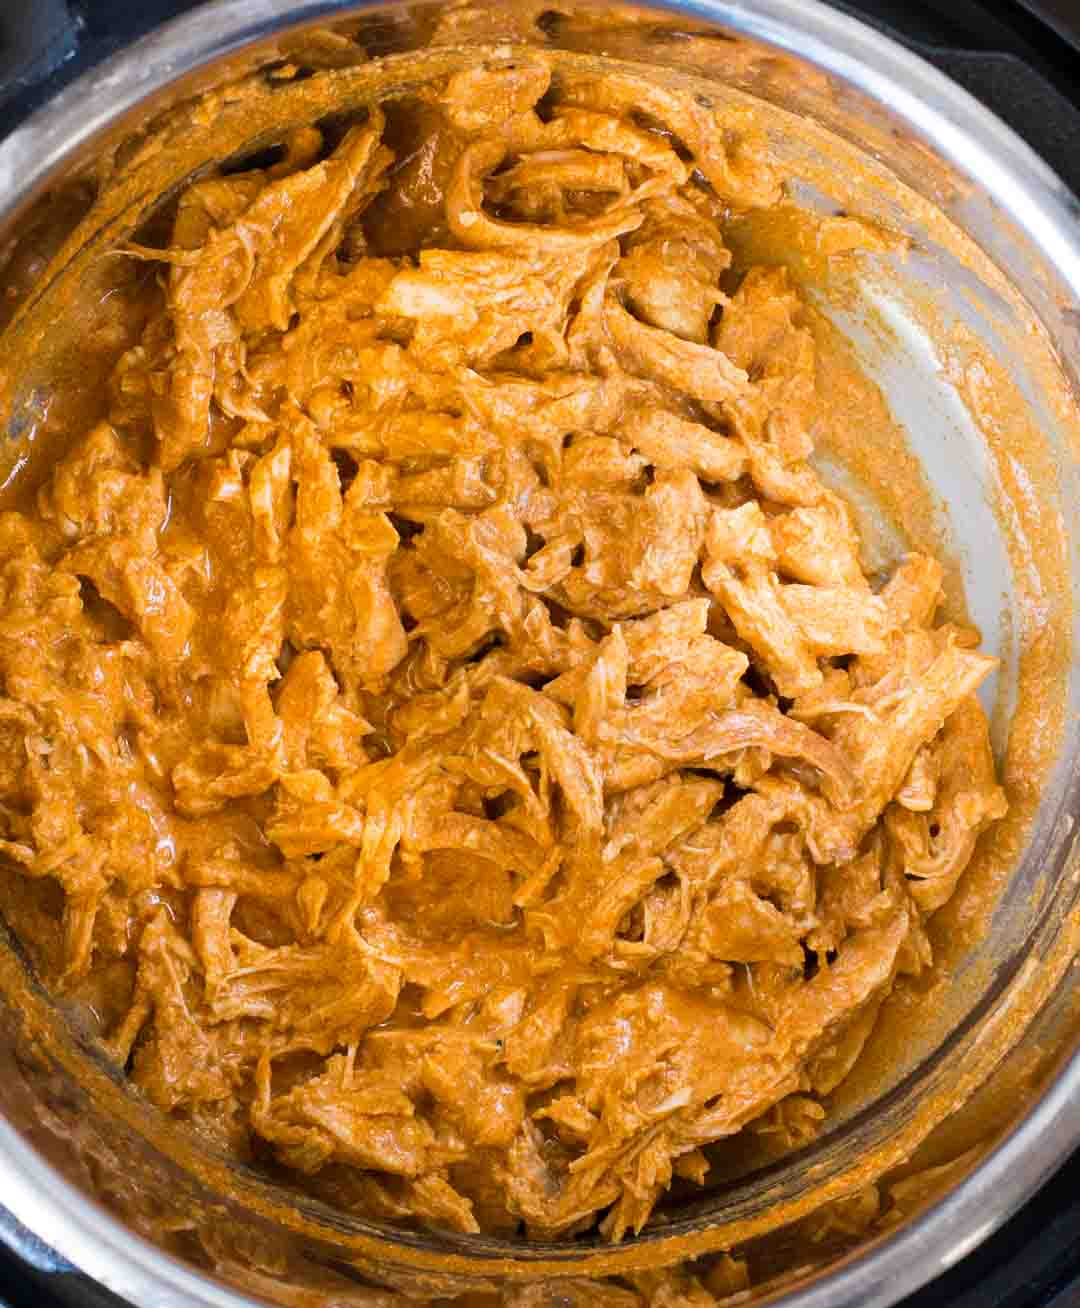 Instant Pot Shredded Chicken is moist, juicy and quick to make. I have 6 exciting flavours of shredded chicken along with the video for you, perfect to add in salads, soups, wraps, tacos or anything that calls for cooked chicken.